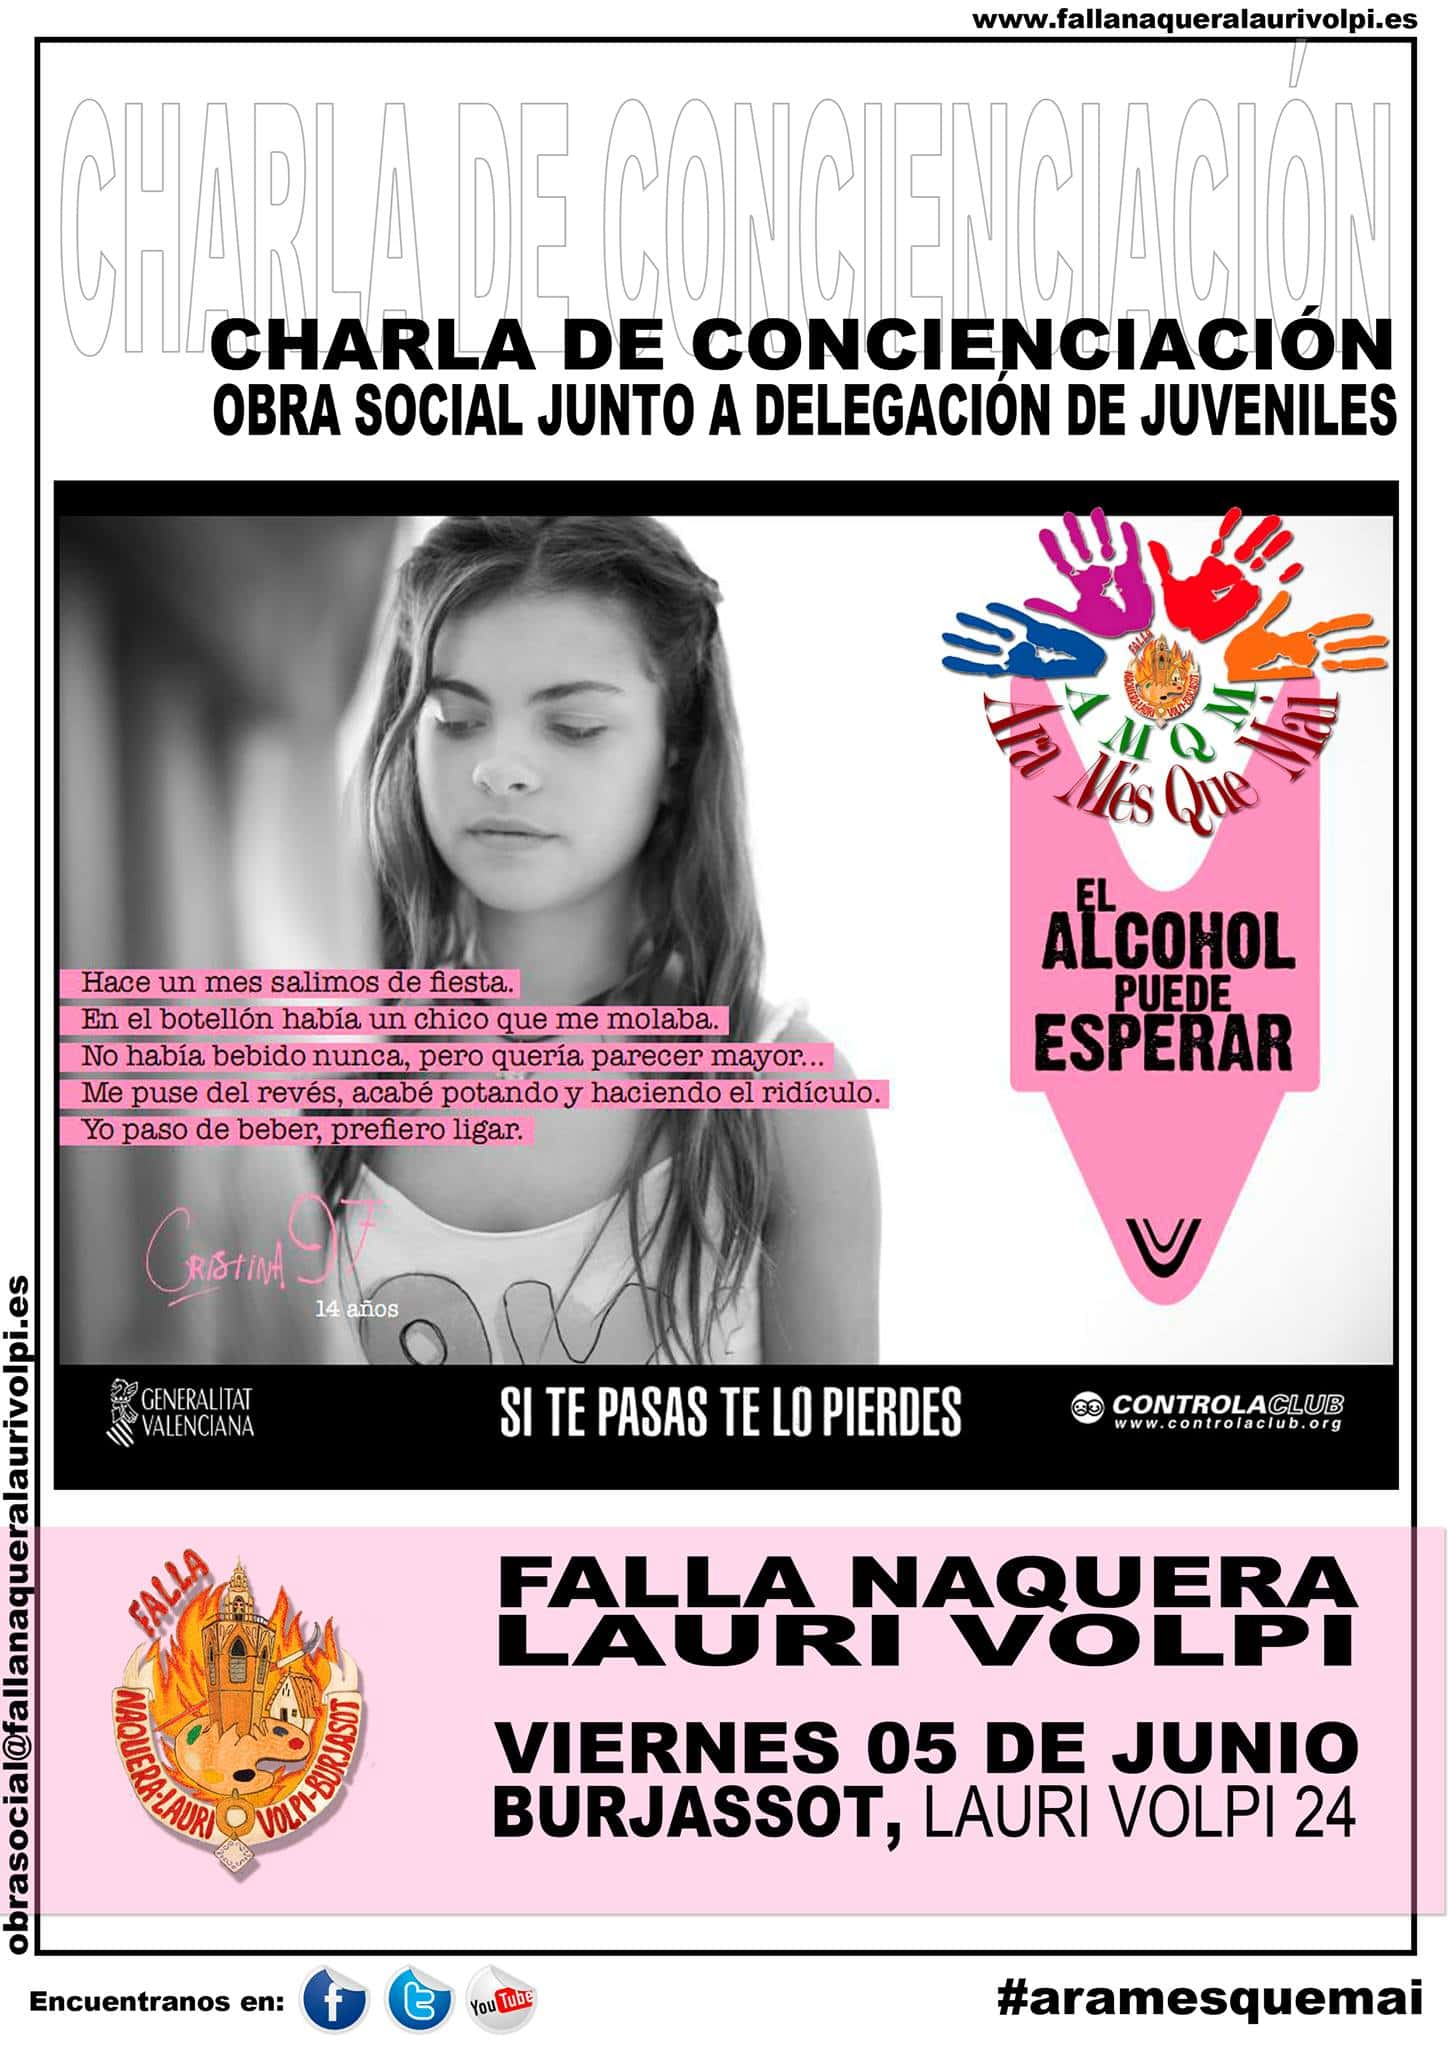 Talk of awareness in charge of the ONG CONTROLACLUB in the Falla Naquera Lauri Volpi